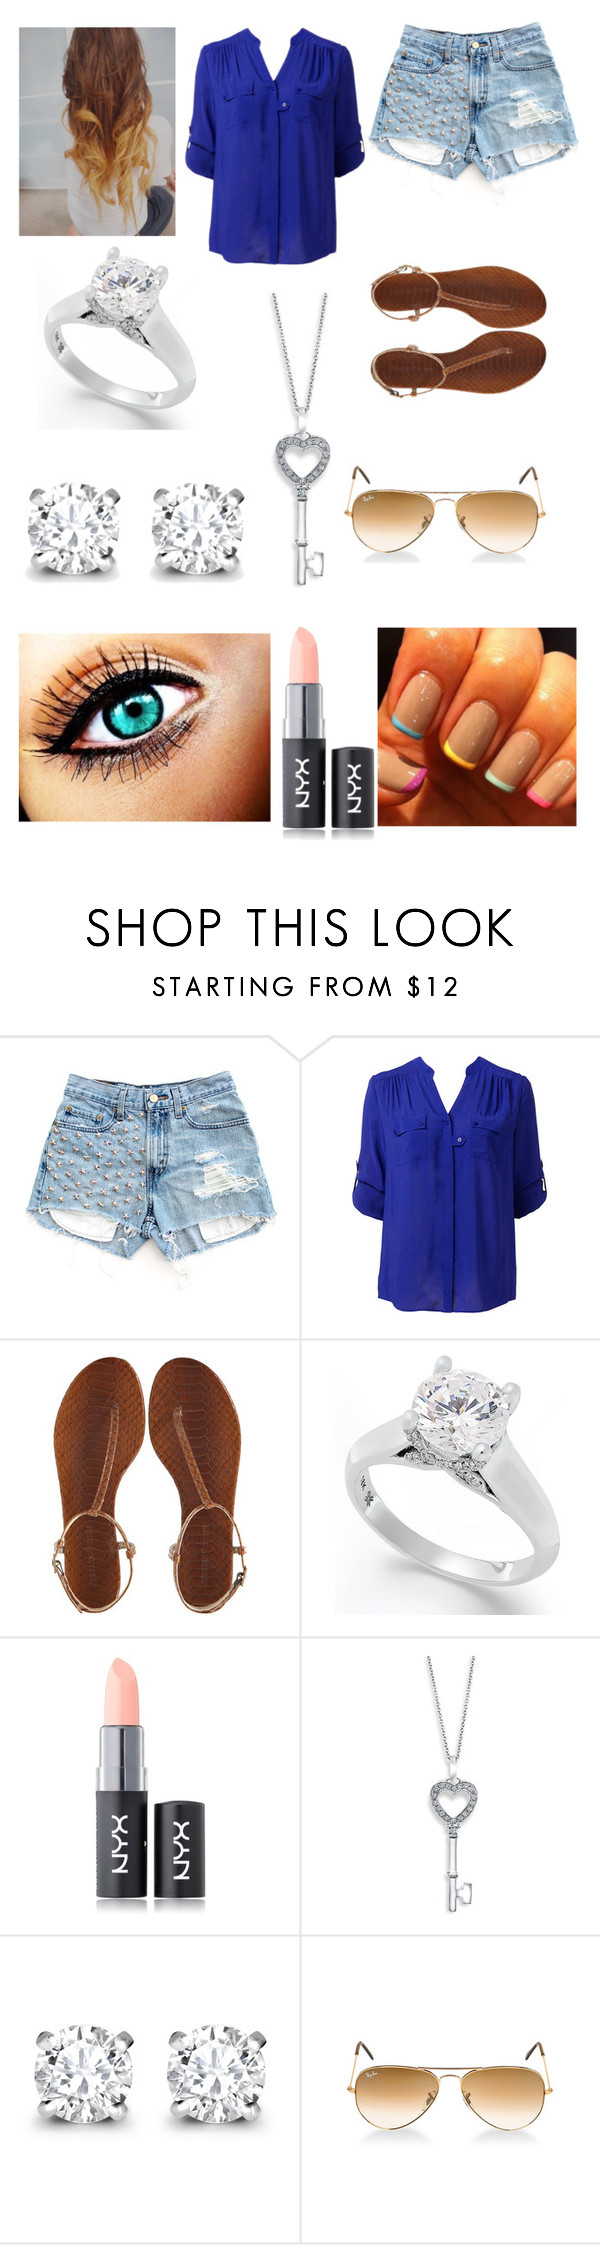 """""""telling management"""" by jademarsh ❤ liked on Polyvore featuring Levi's, Forever New, Avec Modération, R.H. Macy's & Co., NYX, Bony Levy, Asprey and Ray-Ban"""